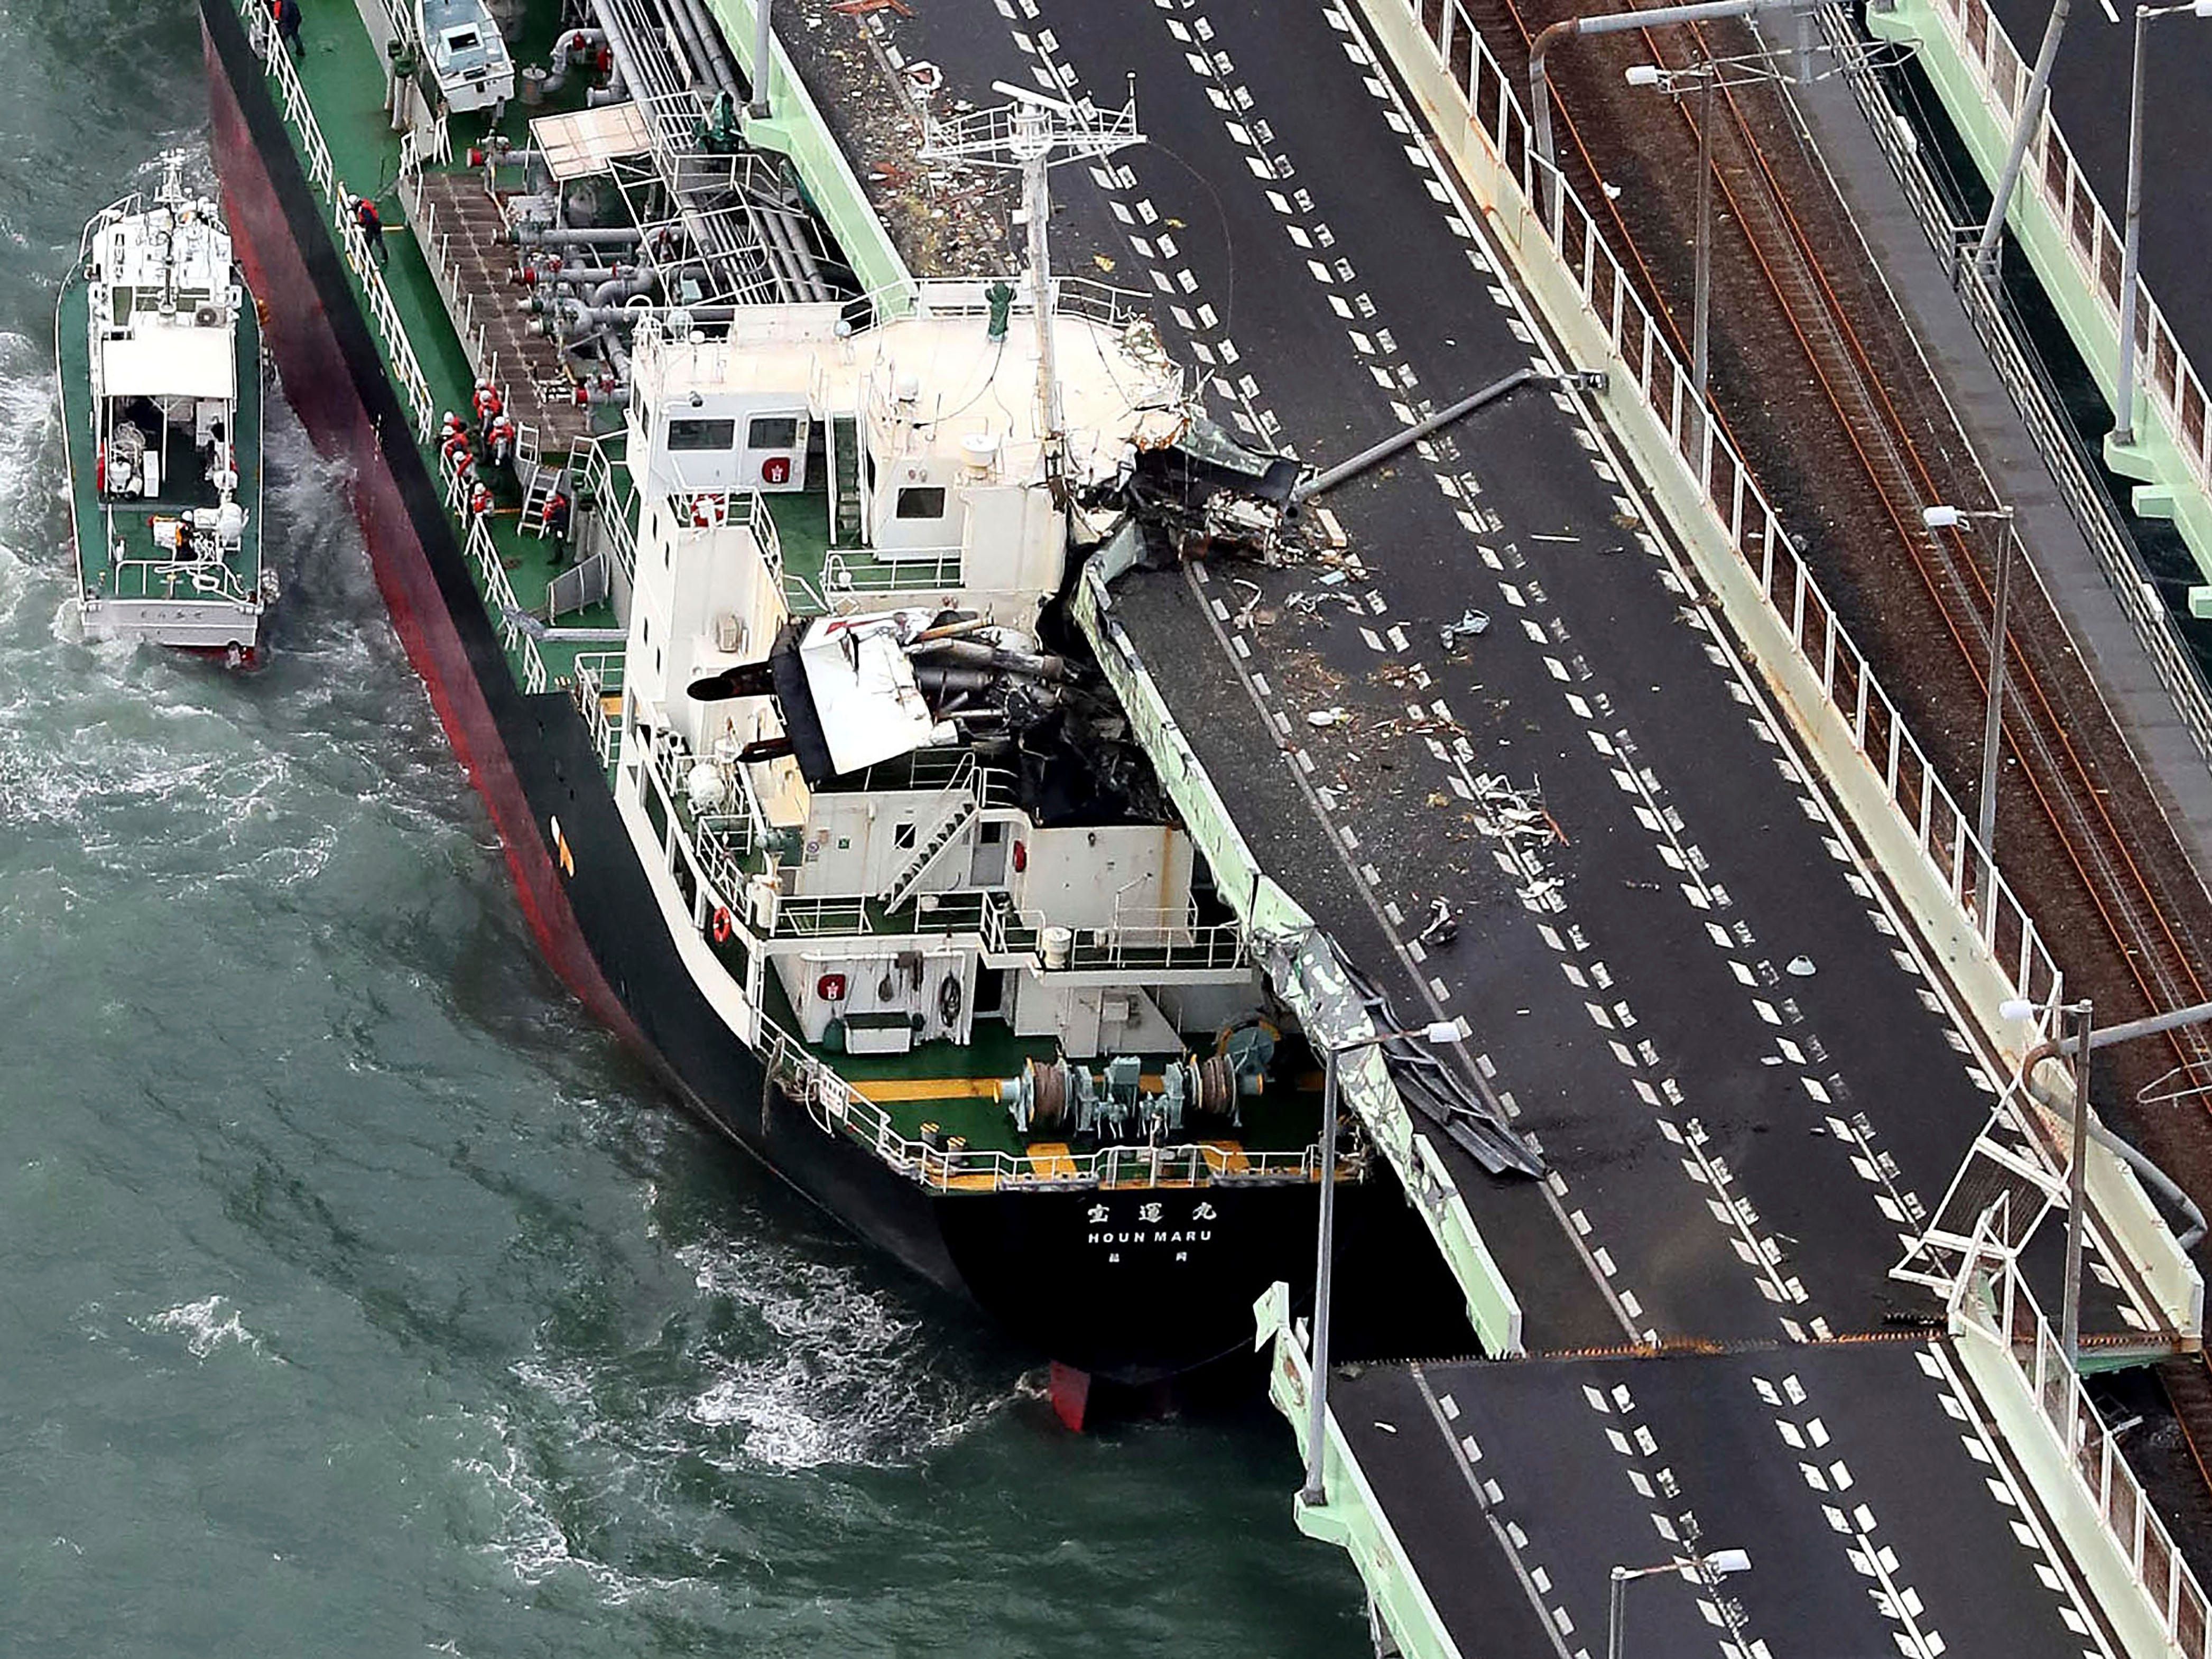 A tanker is seen after it slammed into the side of a bridge connecting the airport to the mainland, damaging part of the bridge and the vessel in Osaka, western Japan, Tuesday, Sept. 4, 2018.